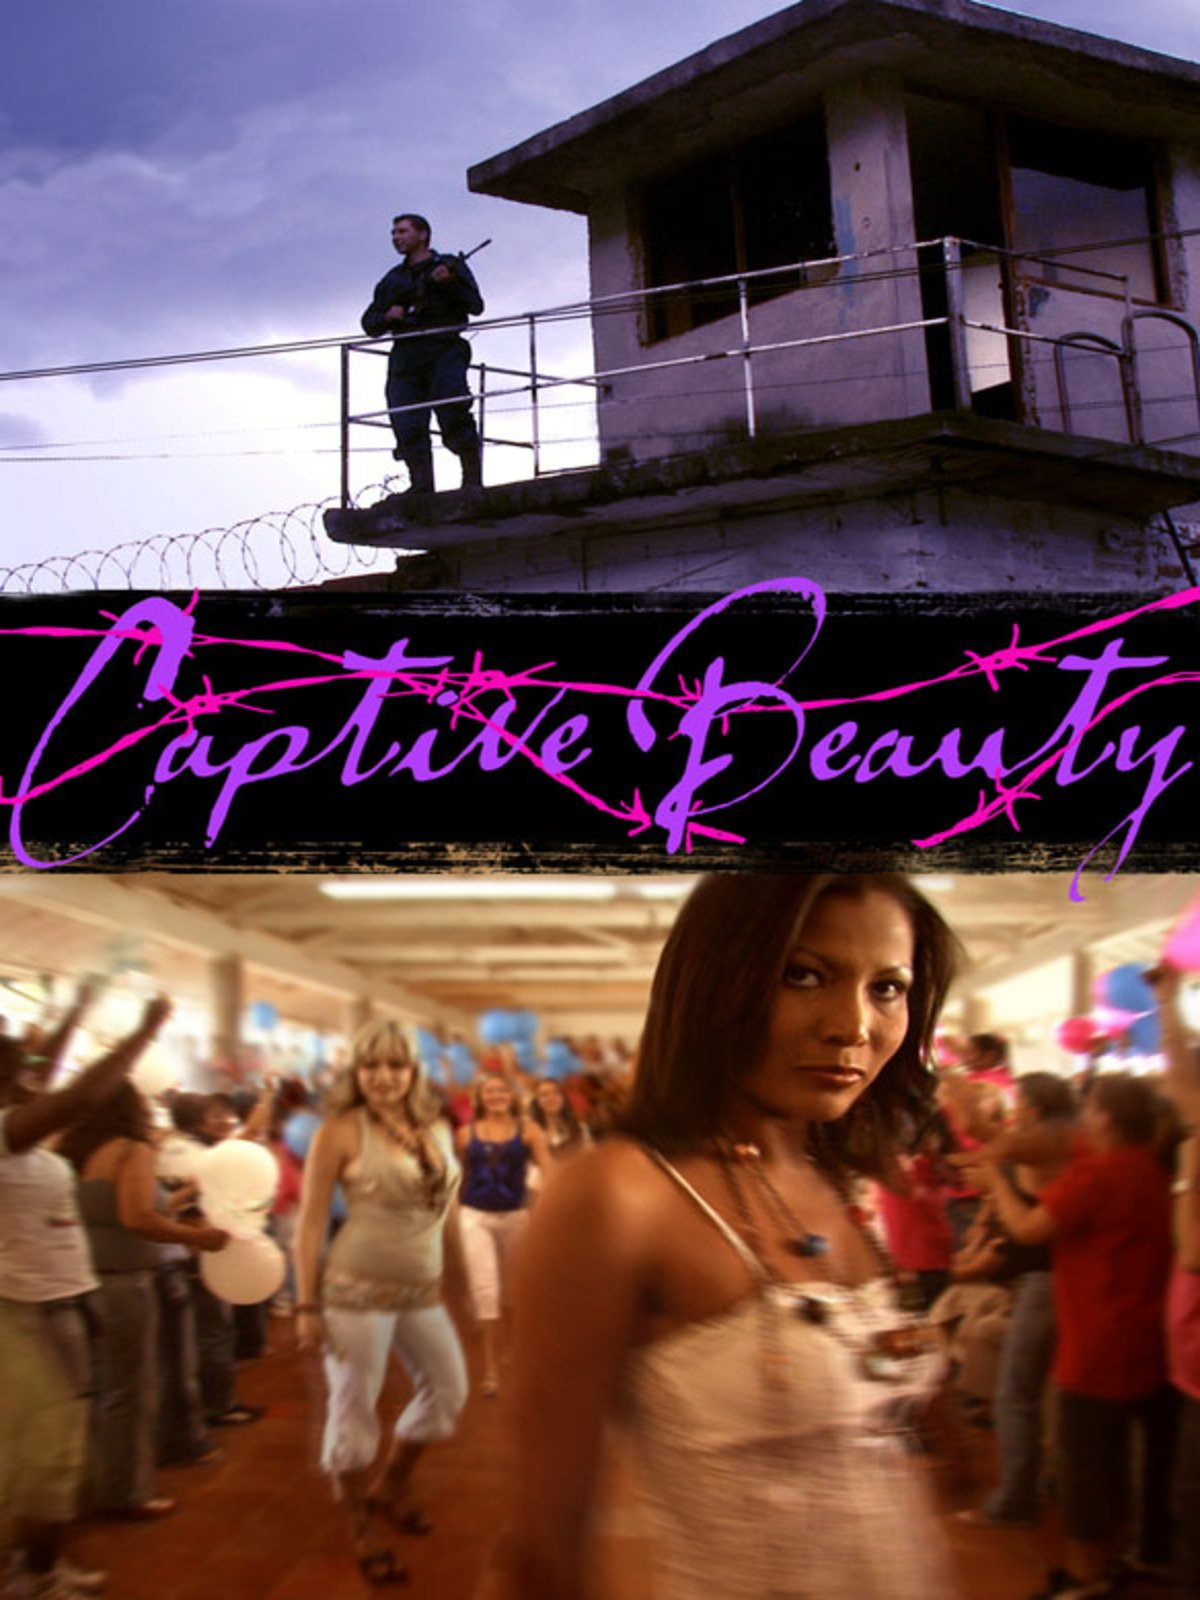 Captive Beauty